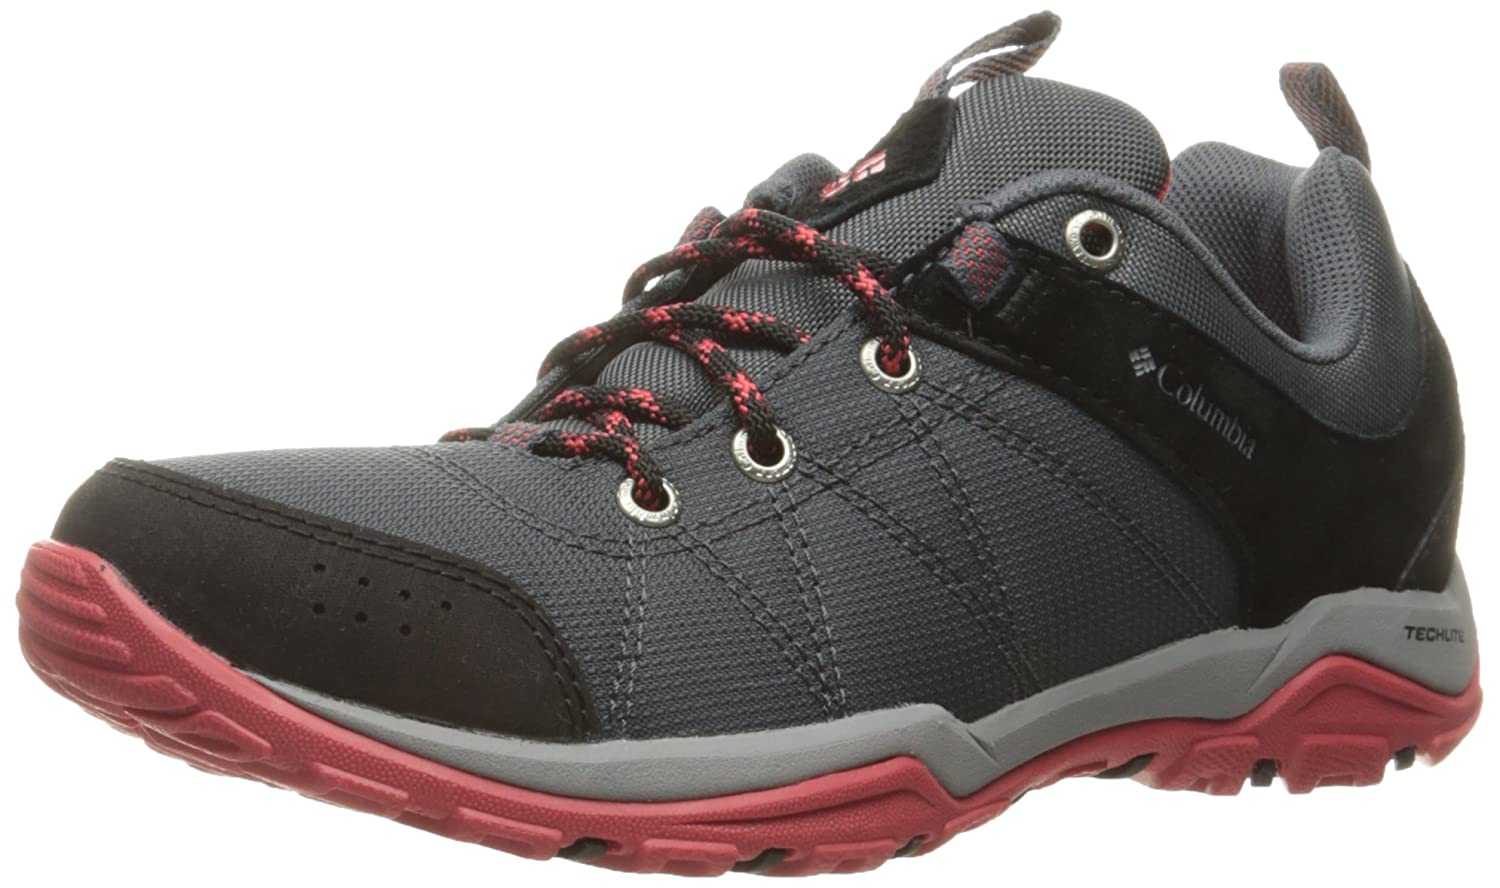 Columbia レディース WOMEN'S FIRE VENTURE TEXTILE B01HEH45LQ 5.5 Regular US|Graphite, Sunset Red Graphite, Sunset Red 5.5 Regular US